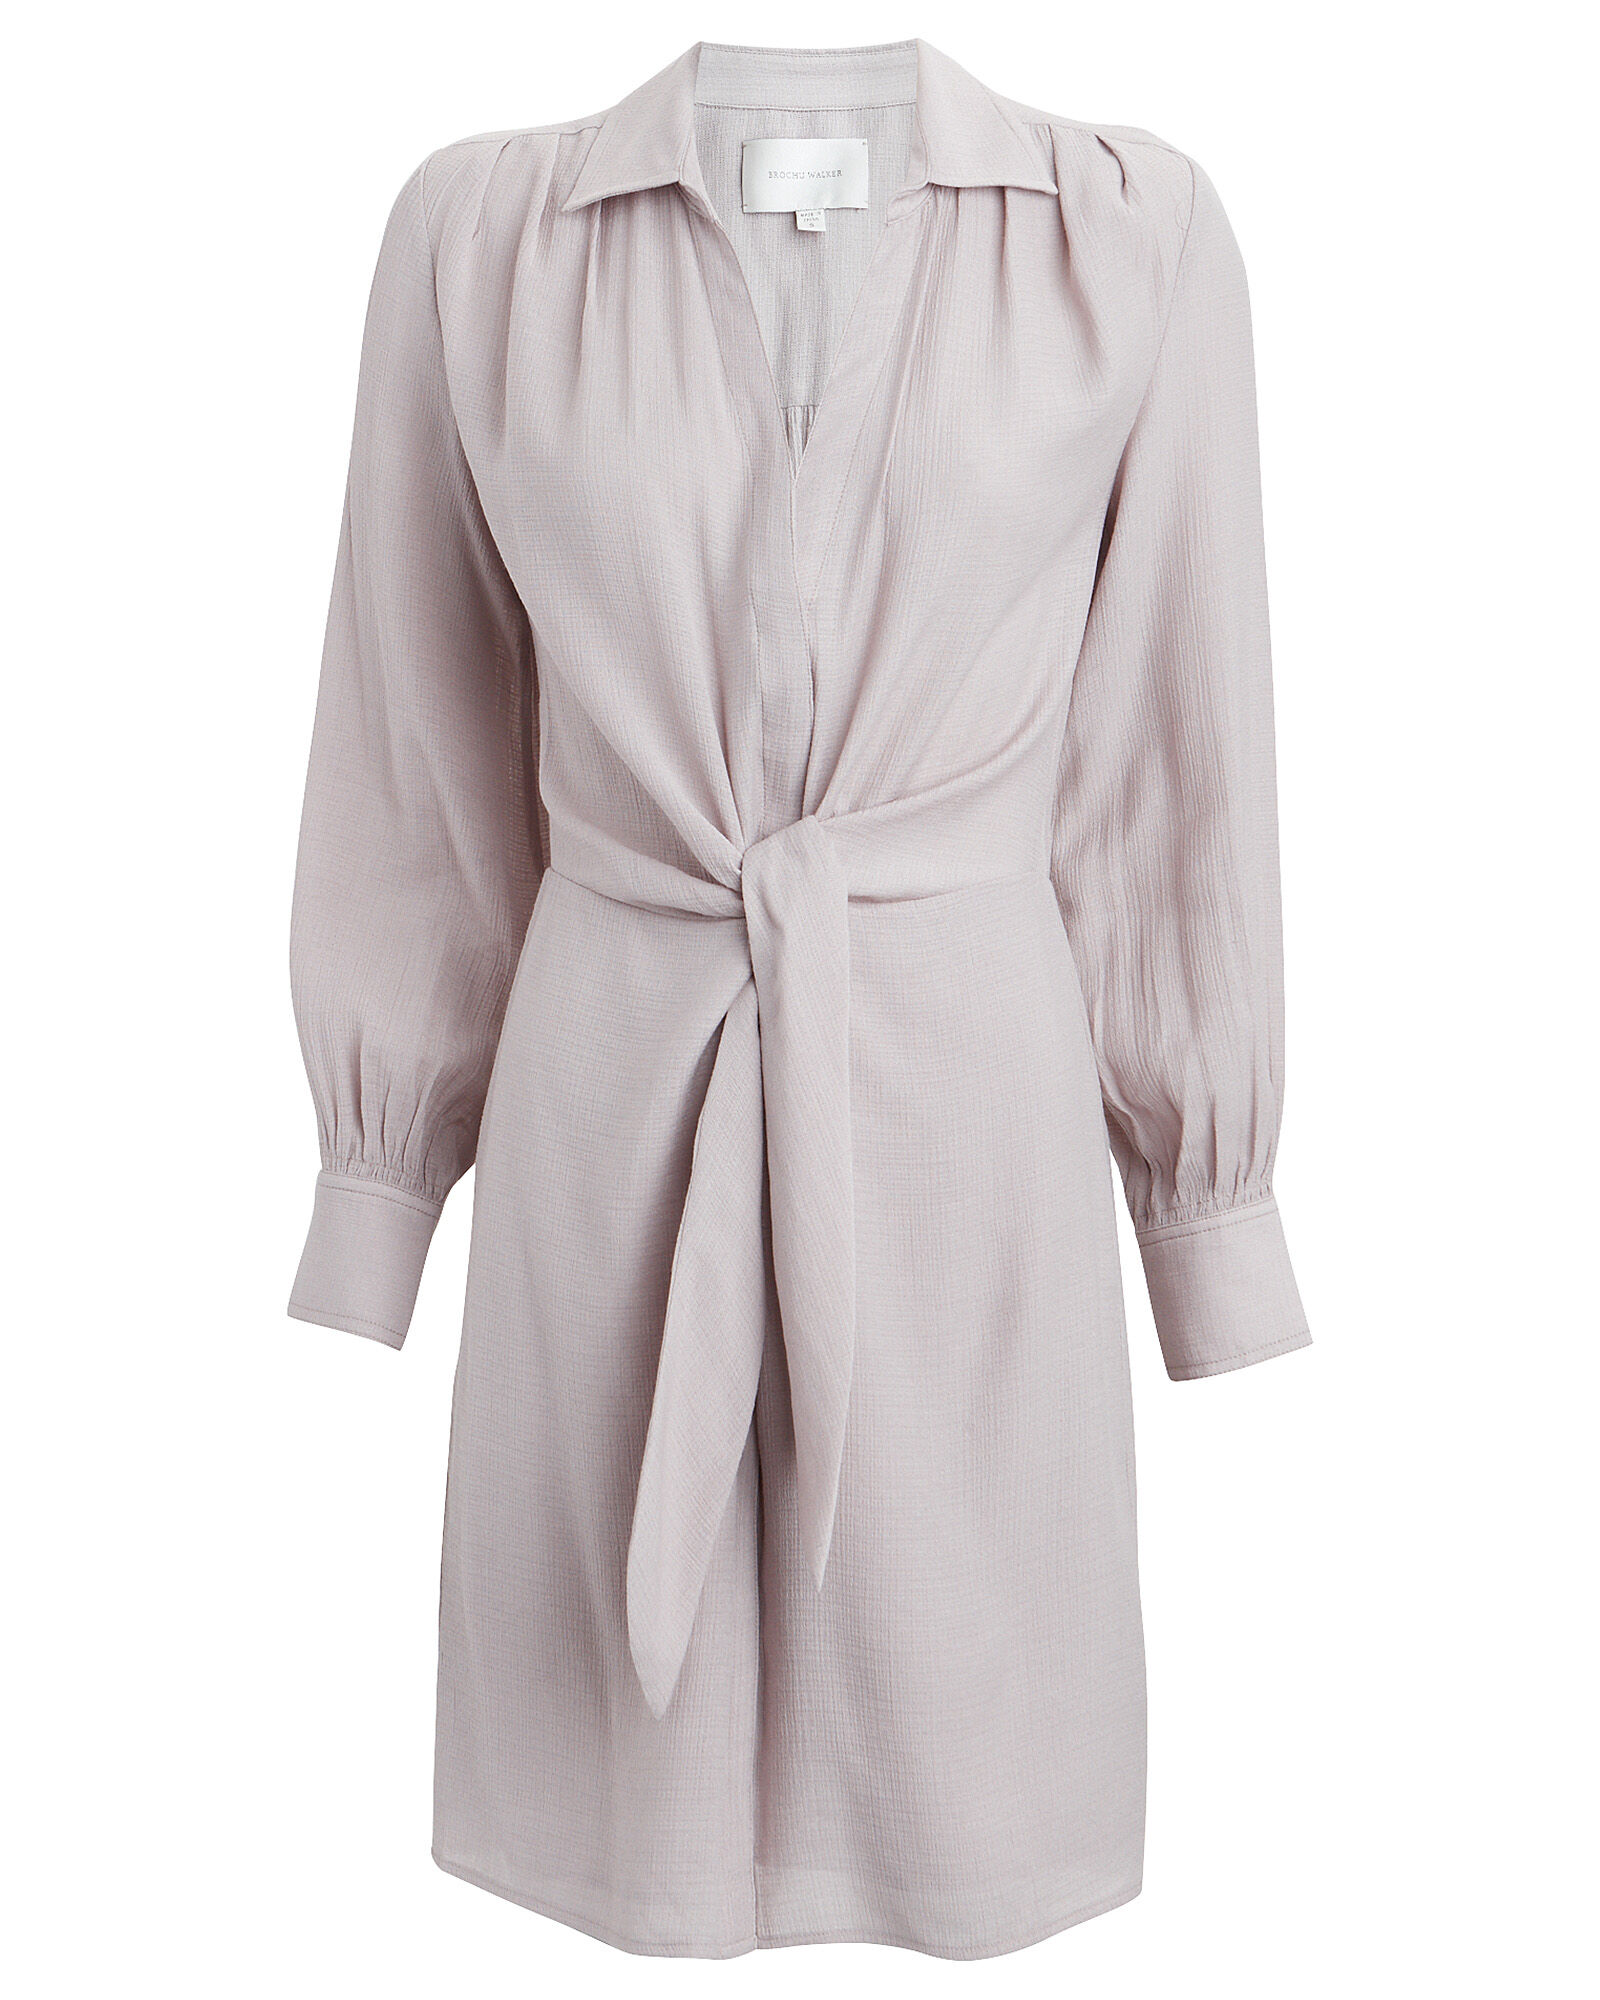 Madsen Melange Shirt Dress, DUSTY MAUVE, hi-res